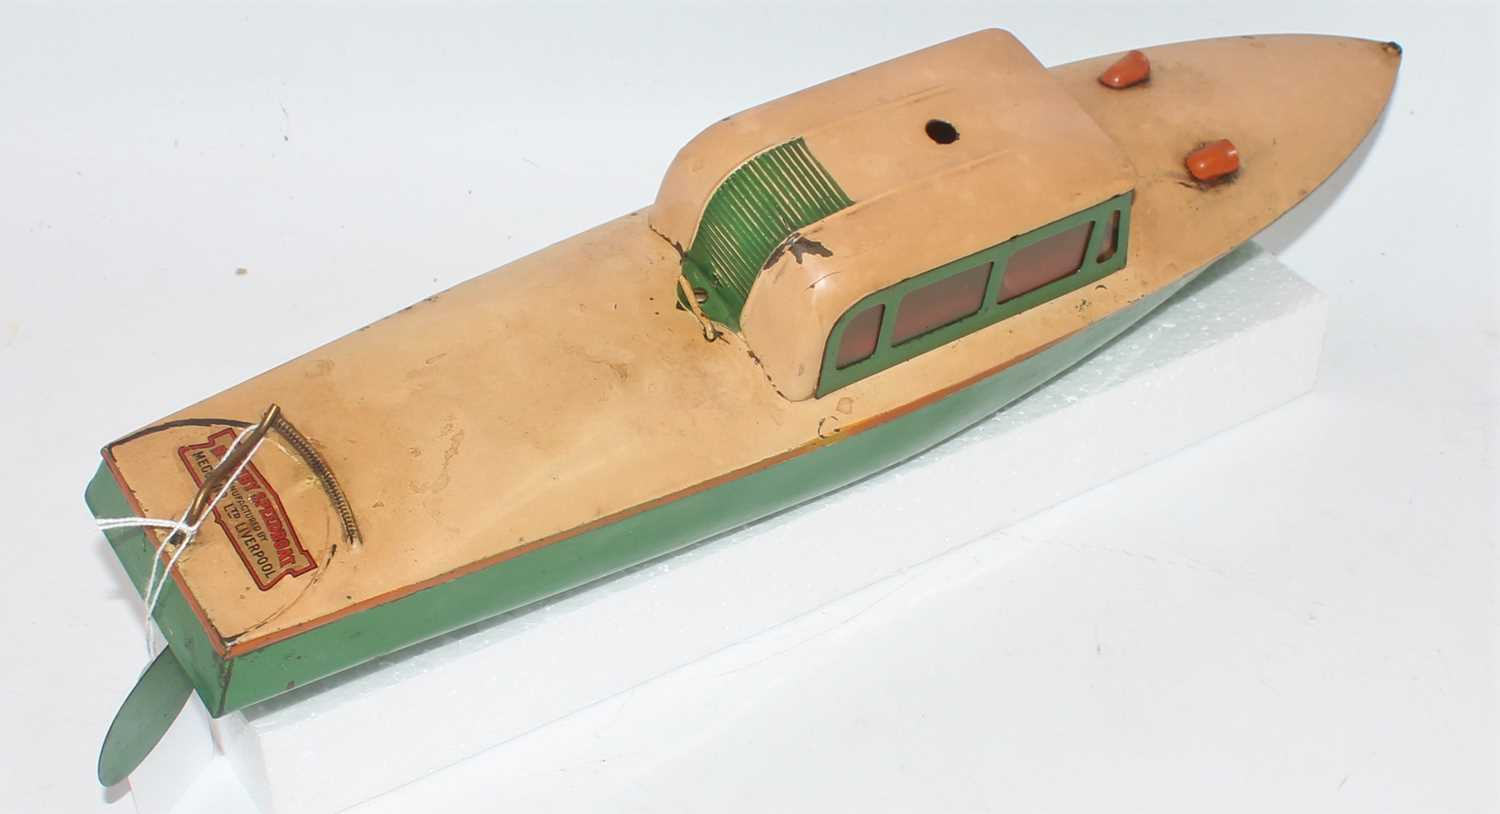 Hornby No.4 Venture Speed Boat, finished in green and cream with orange detailing, loose example, - Image 2 of 2